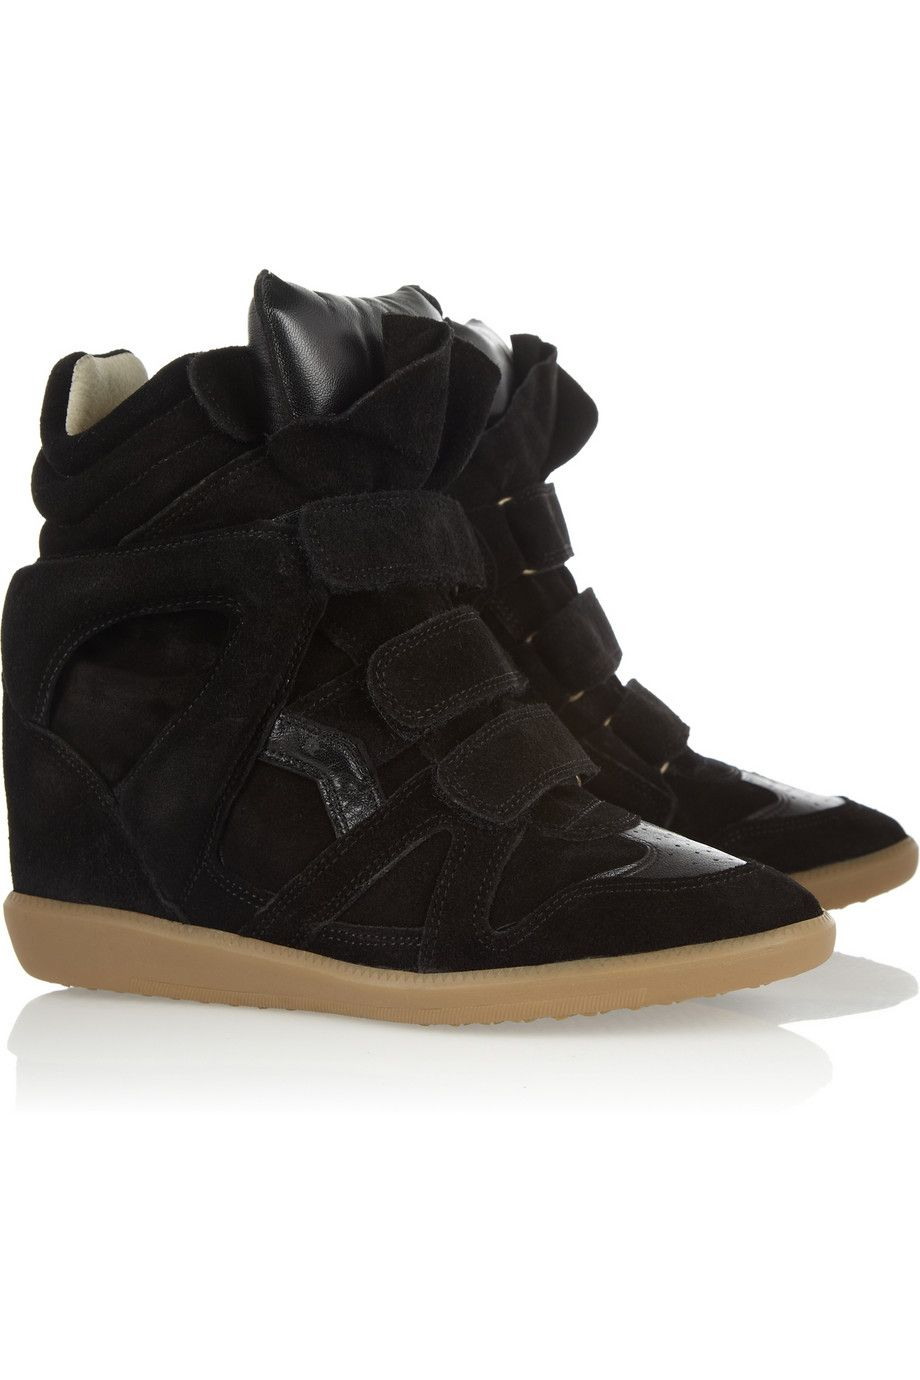 Isabel Marant|The Bekket leather and suede sneakers|NET-A-PORTER.COM